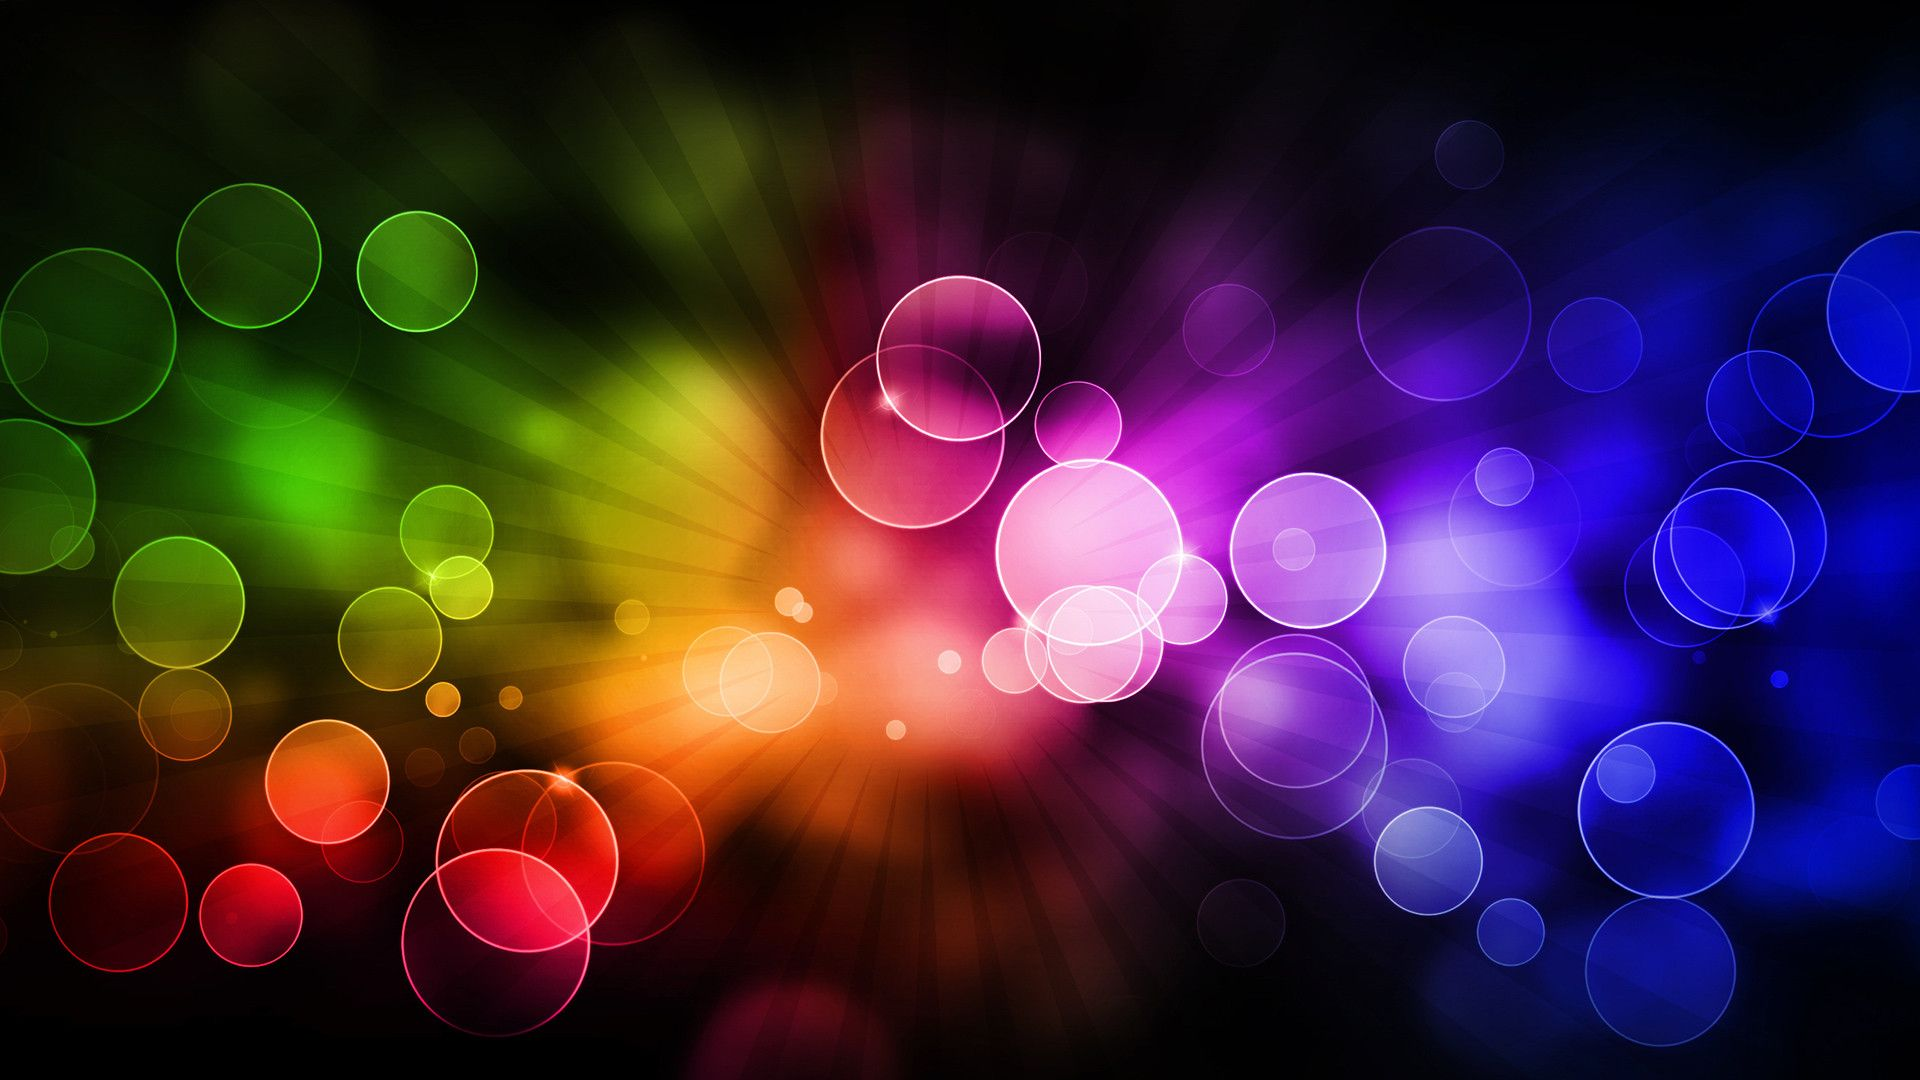 HD Wallpaper Rainbow cool Backgrounds, Wallpapers, HD Wallpapers ... cool Backgrounds For Your ...